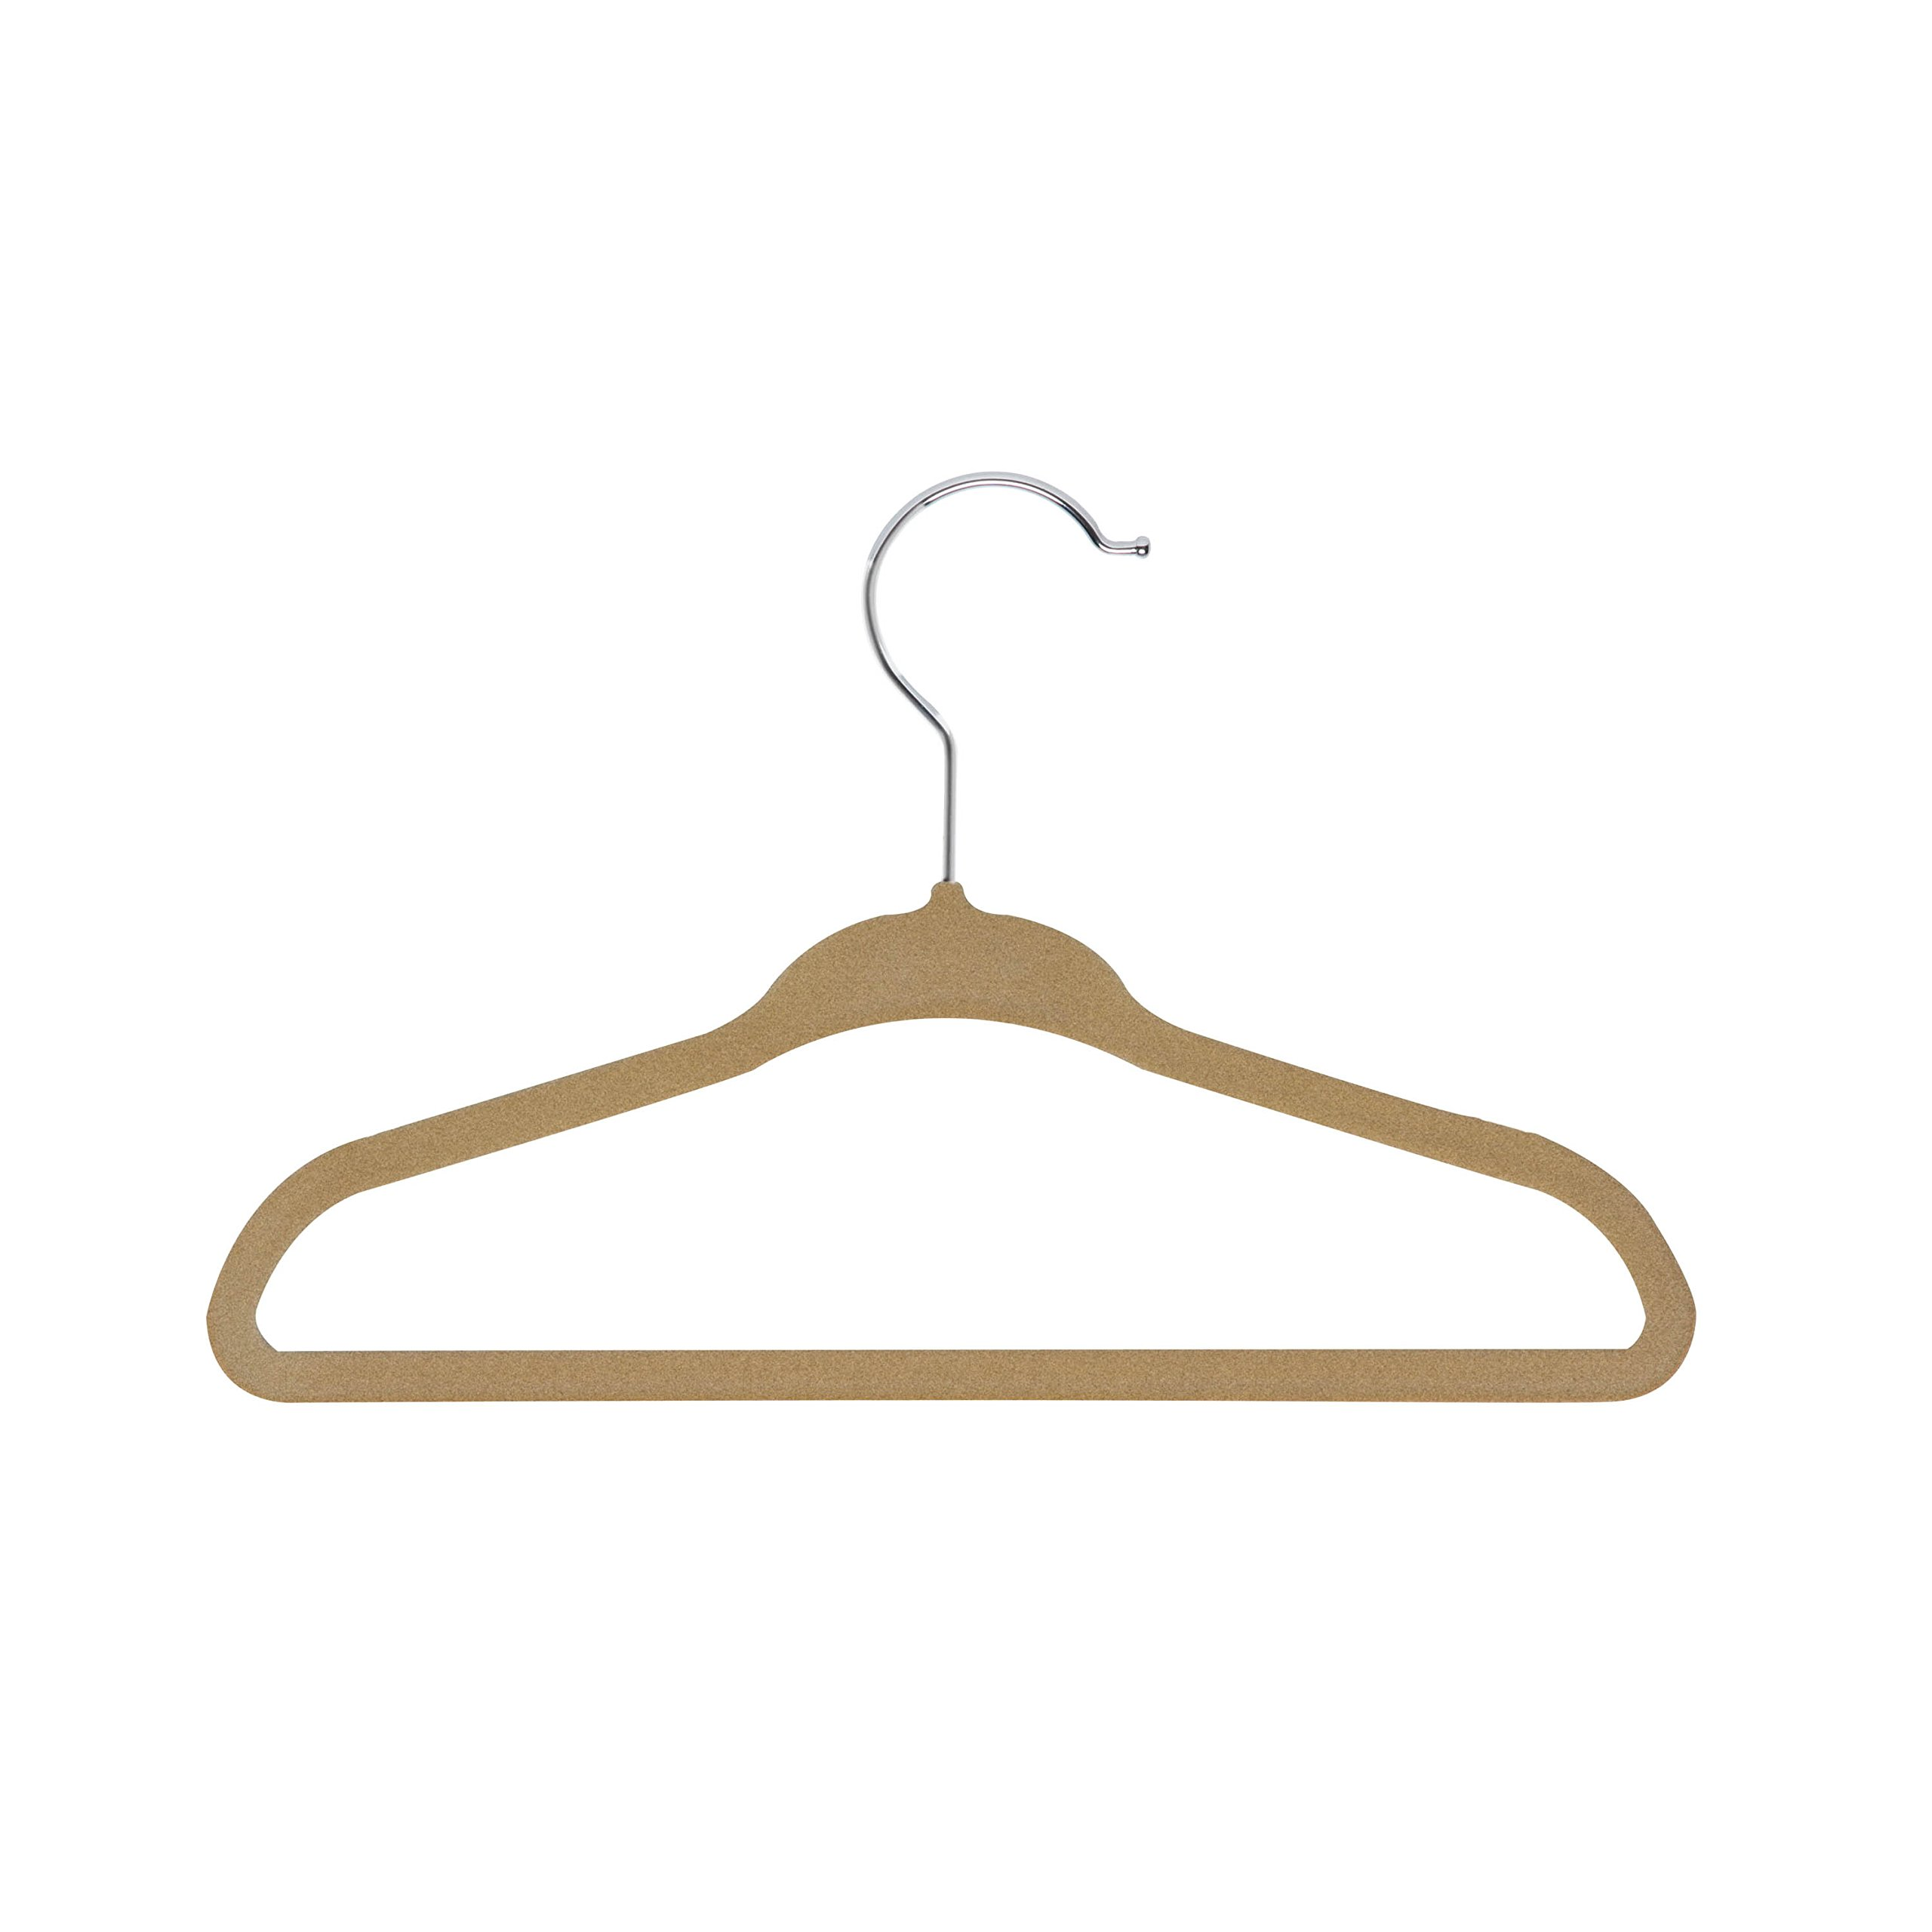 HoneyCanDo 60-Pack Kids Velvet Touch Suit Hangers, tan by Honey-Can-Do (Image #1)